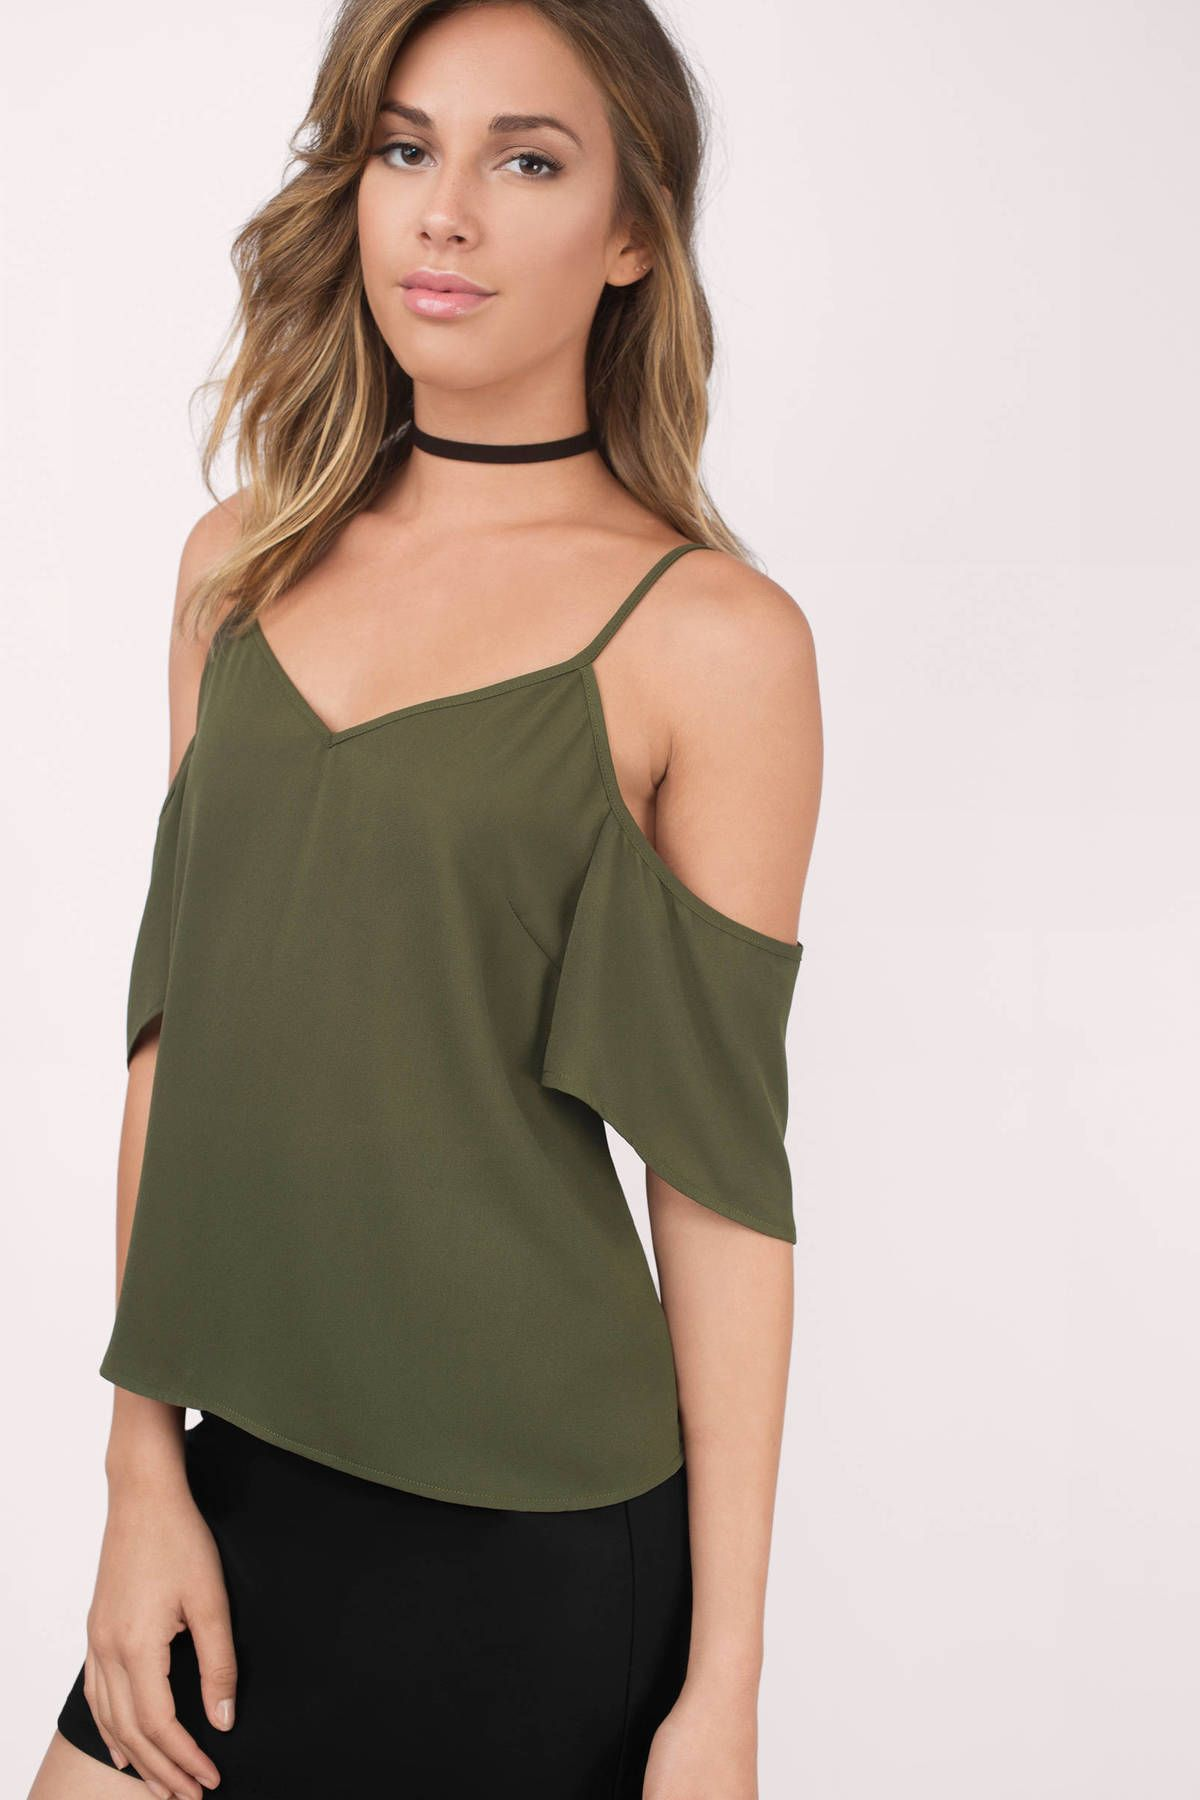 Amberly cold shoulder top cutout shoulder top frilly